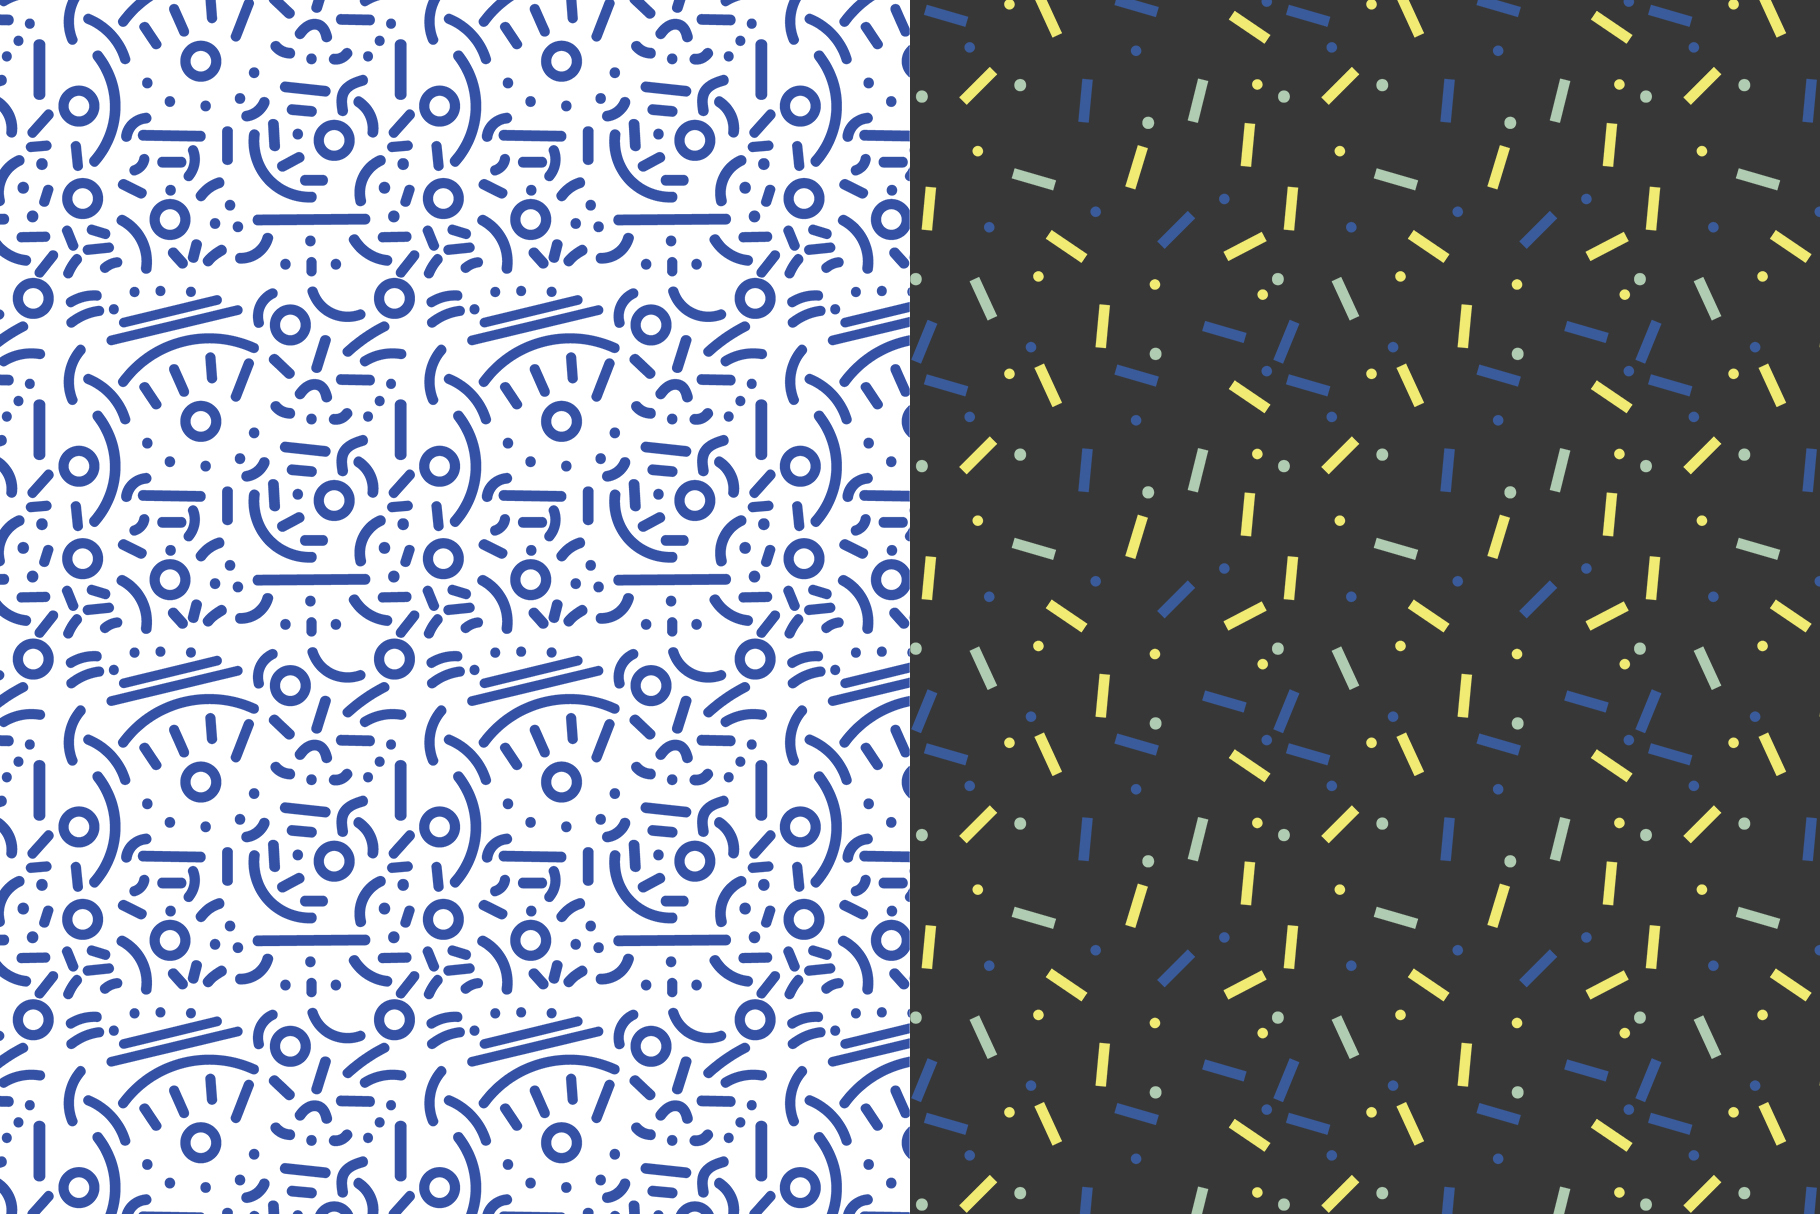 Abstract Geometric Patterns example image 6